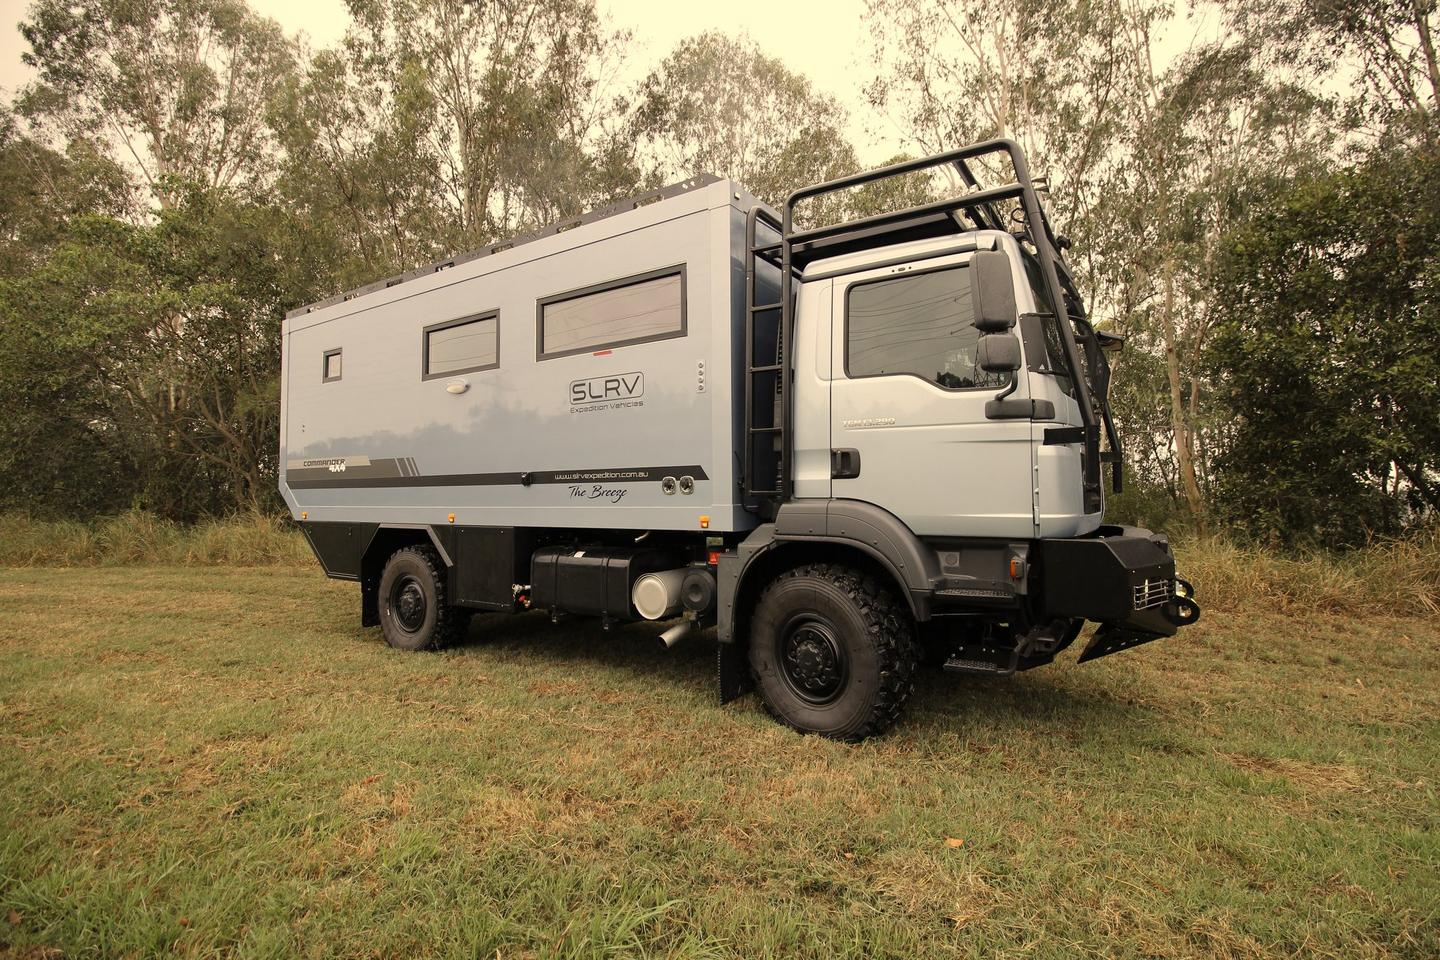 SLRV builds the smaller Commander 4x4 on a MAN chassis